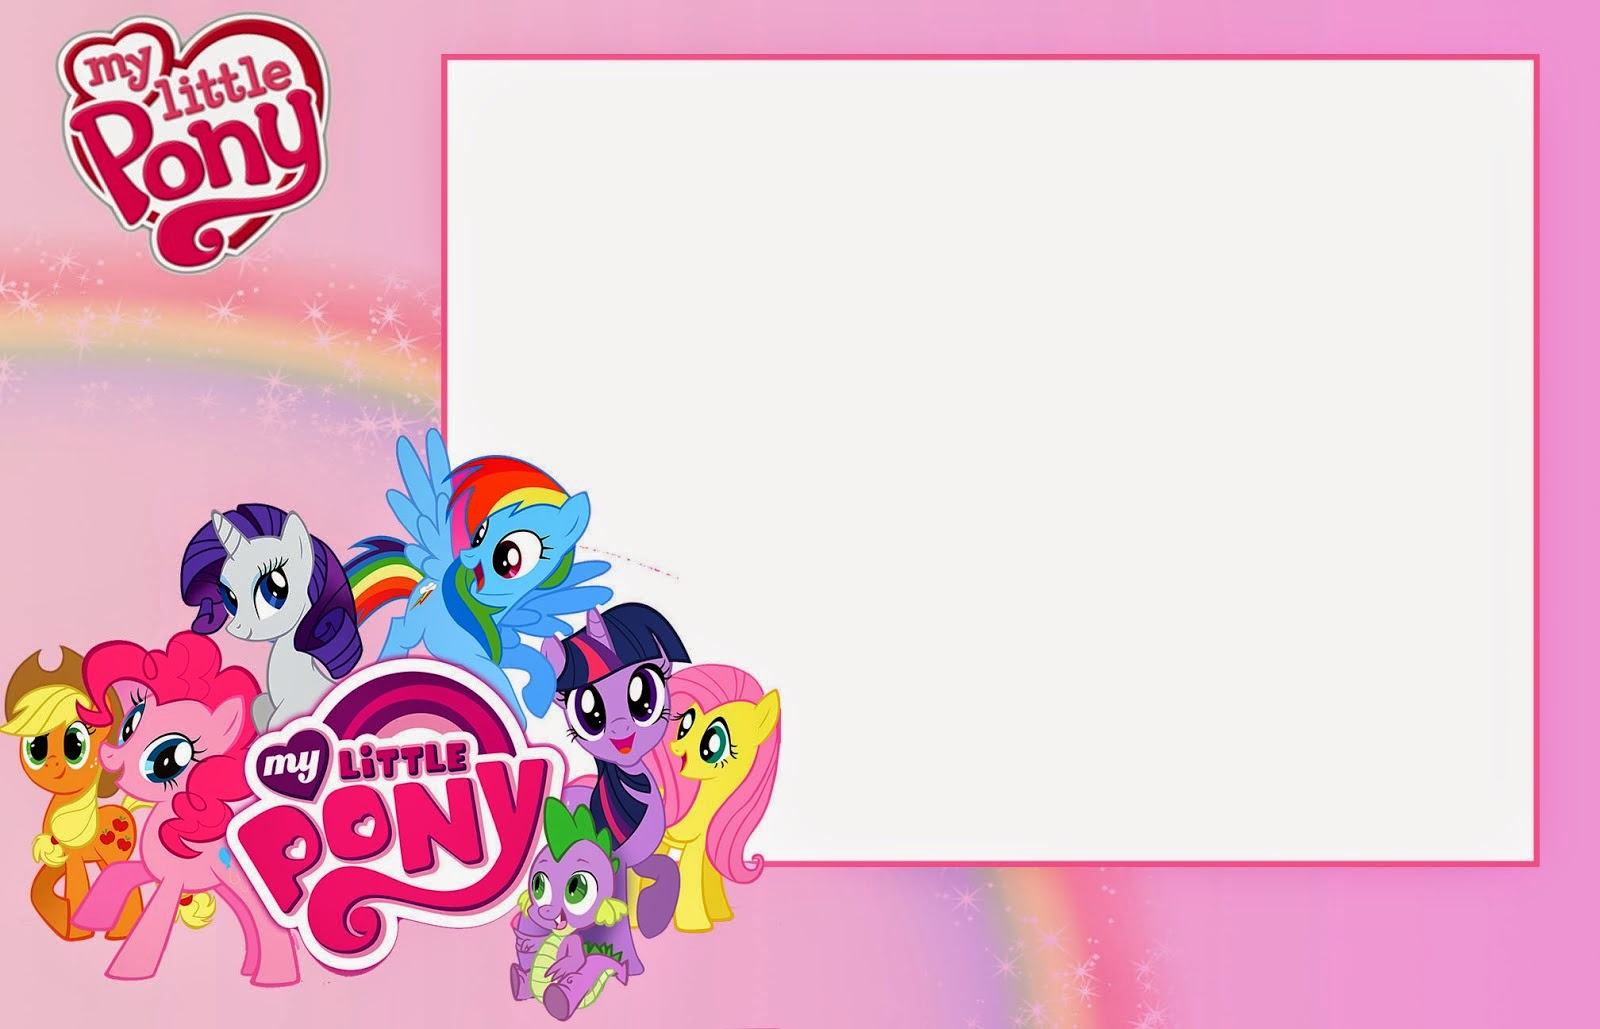 My Little Pony Party: Free Printable Invitations. | Oh My Fiesta! in ...